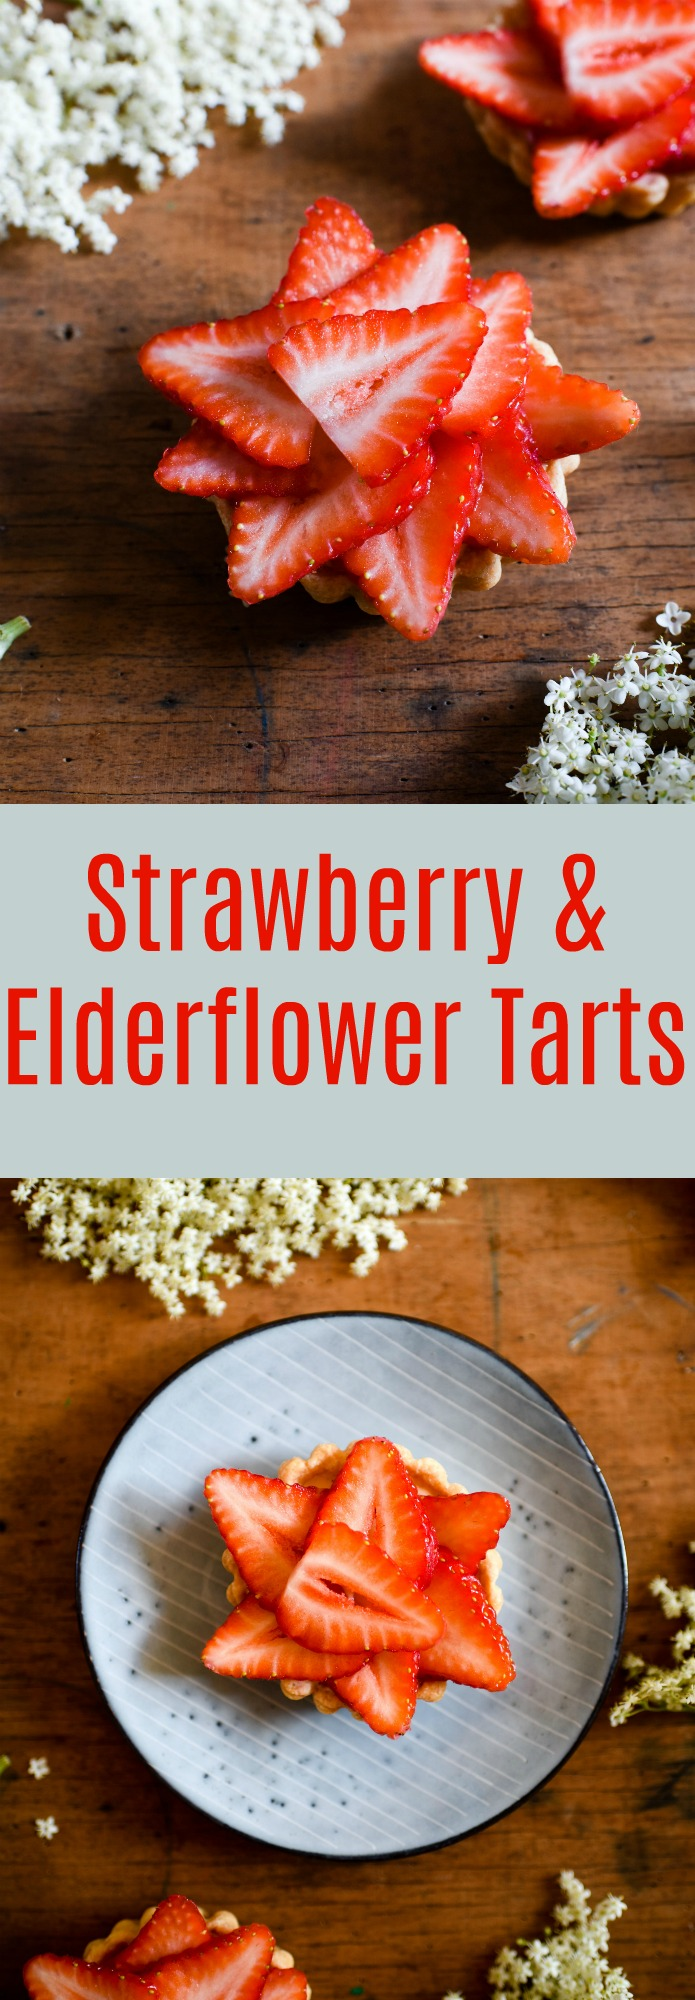 Strawberry & Elderflower Tarts | Patisserie Makes Perfect